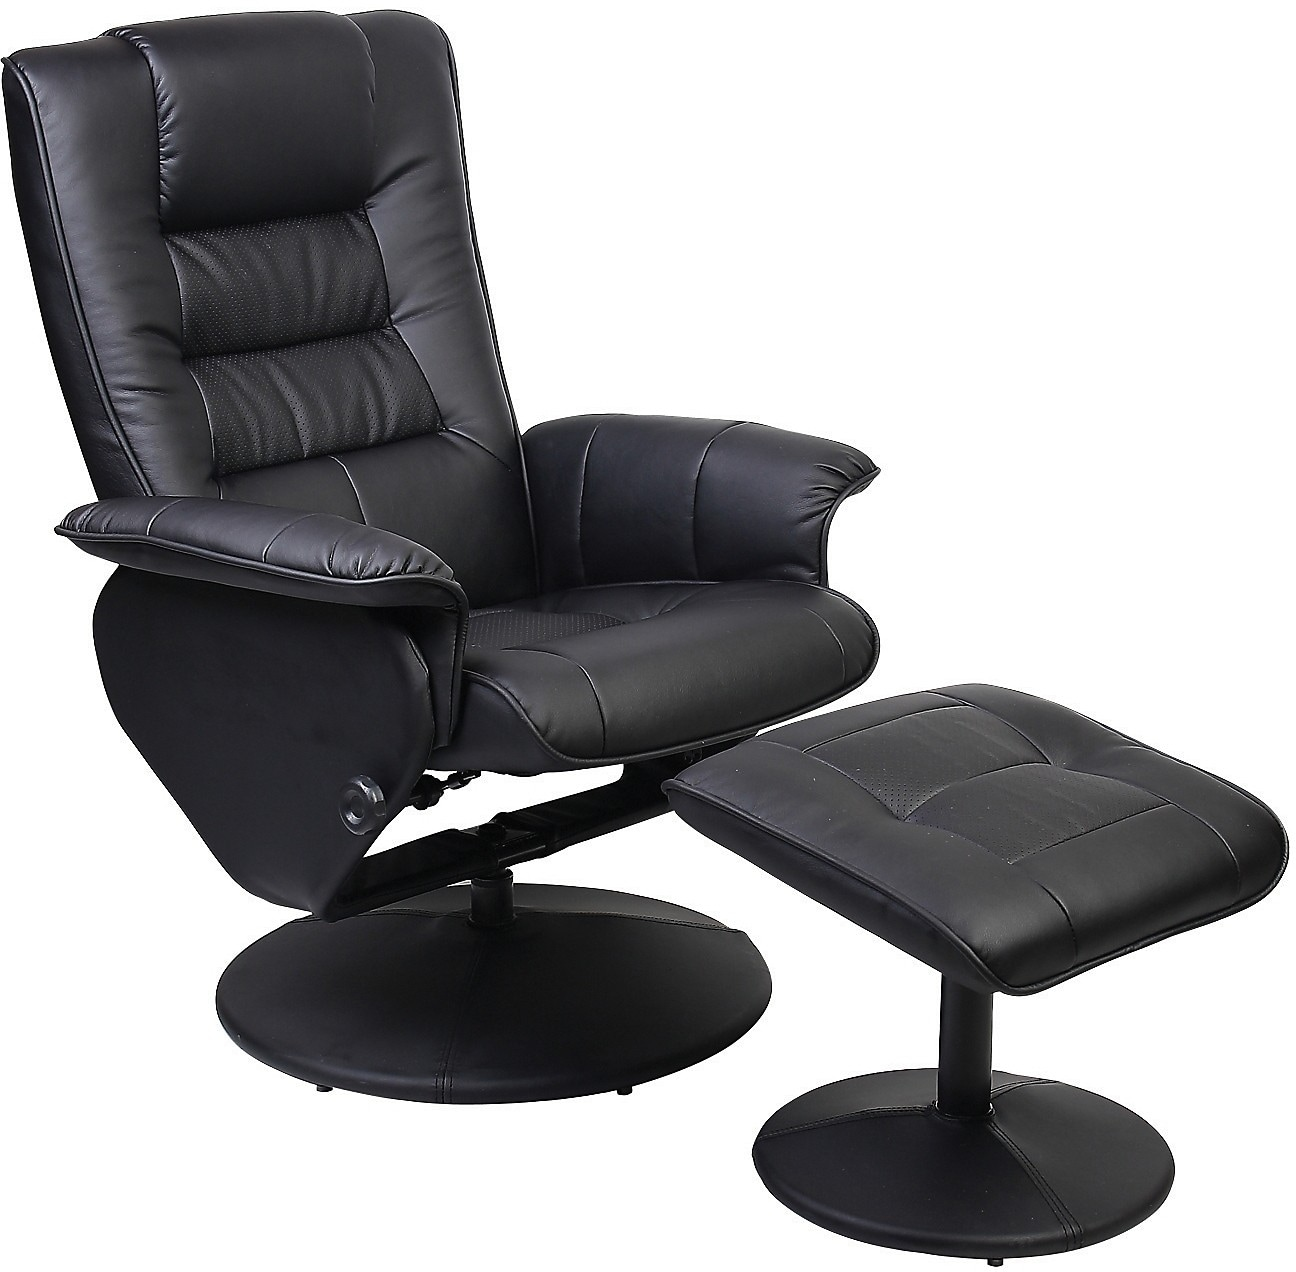 Duncan Reclining Chair w/Ottoman - Black